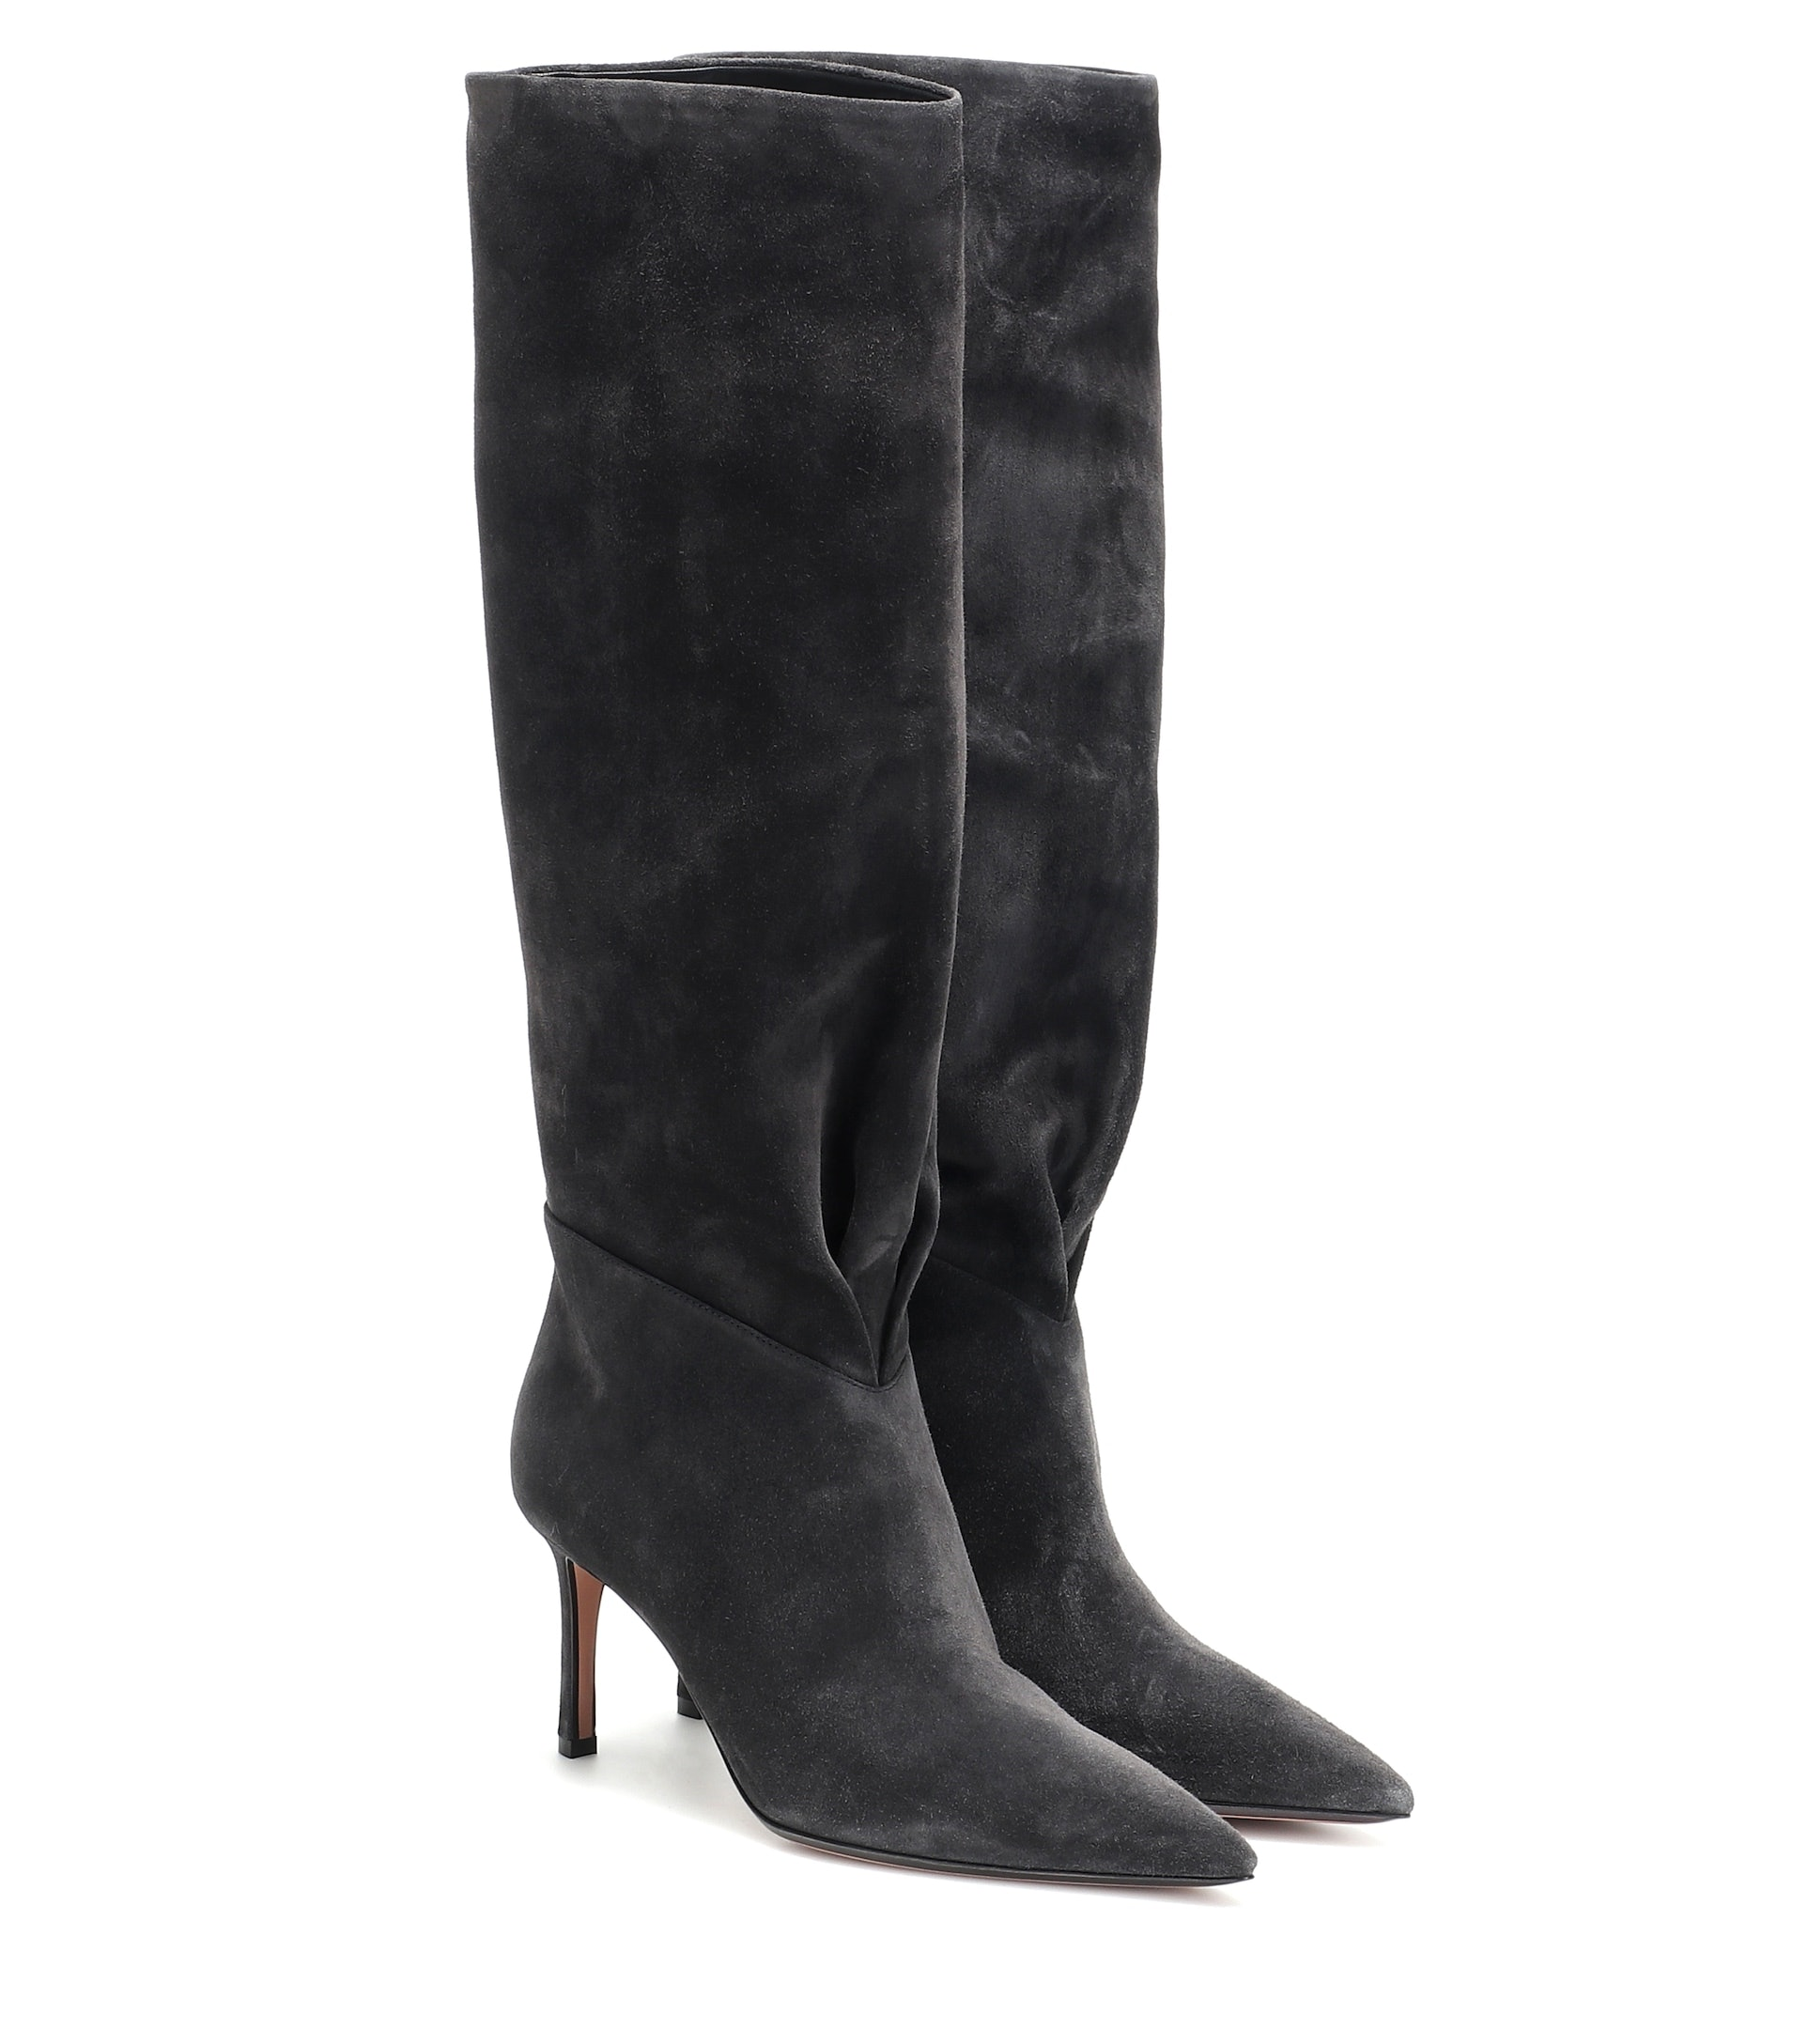 342ea7682fd These Fall 2019 Boot Trends Are Your New Footwear Essentials